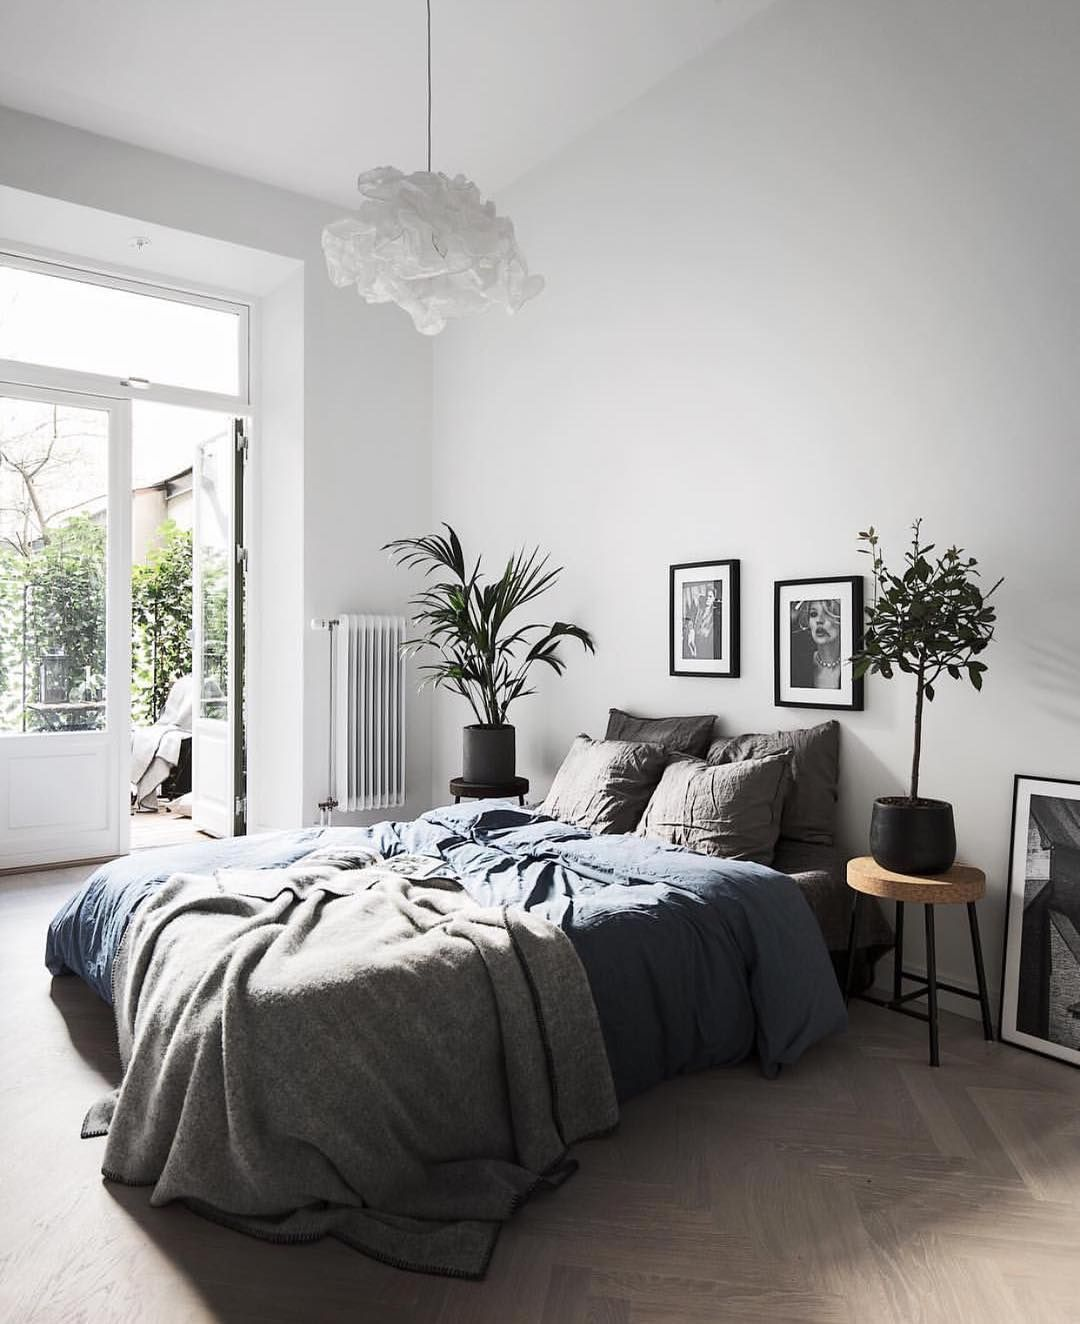 sunday bedroom inspo don t mind if i do styling by on home interior design bedroom id=77080